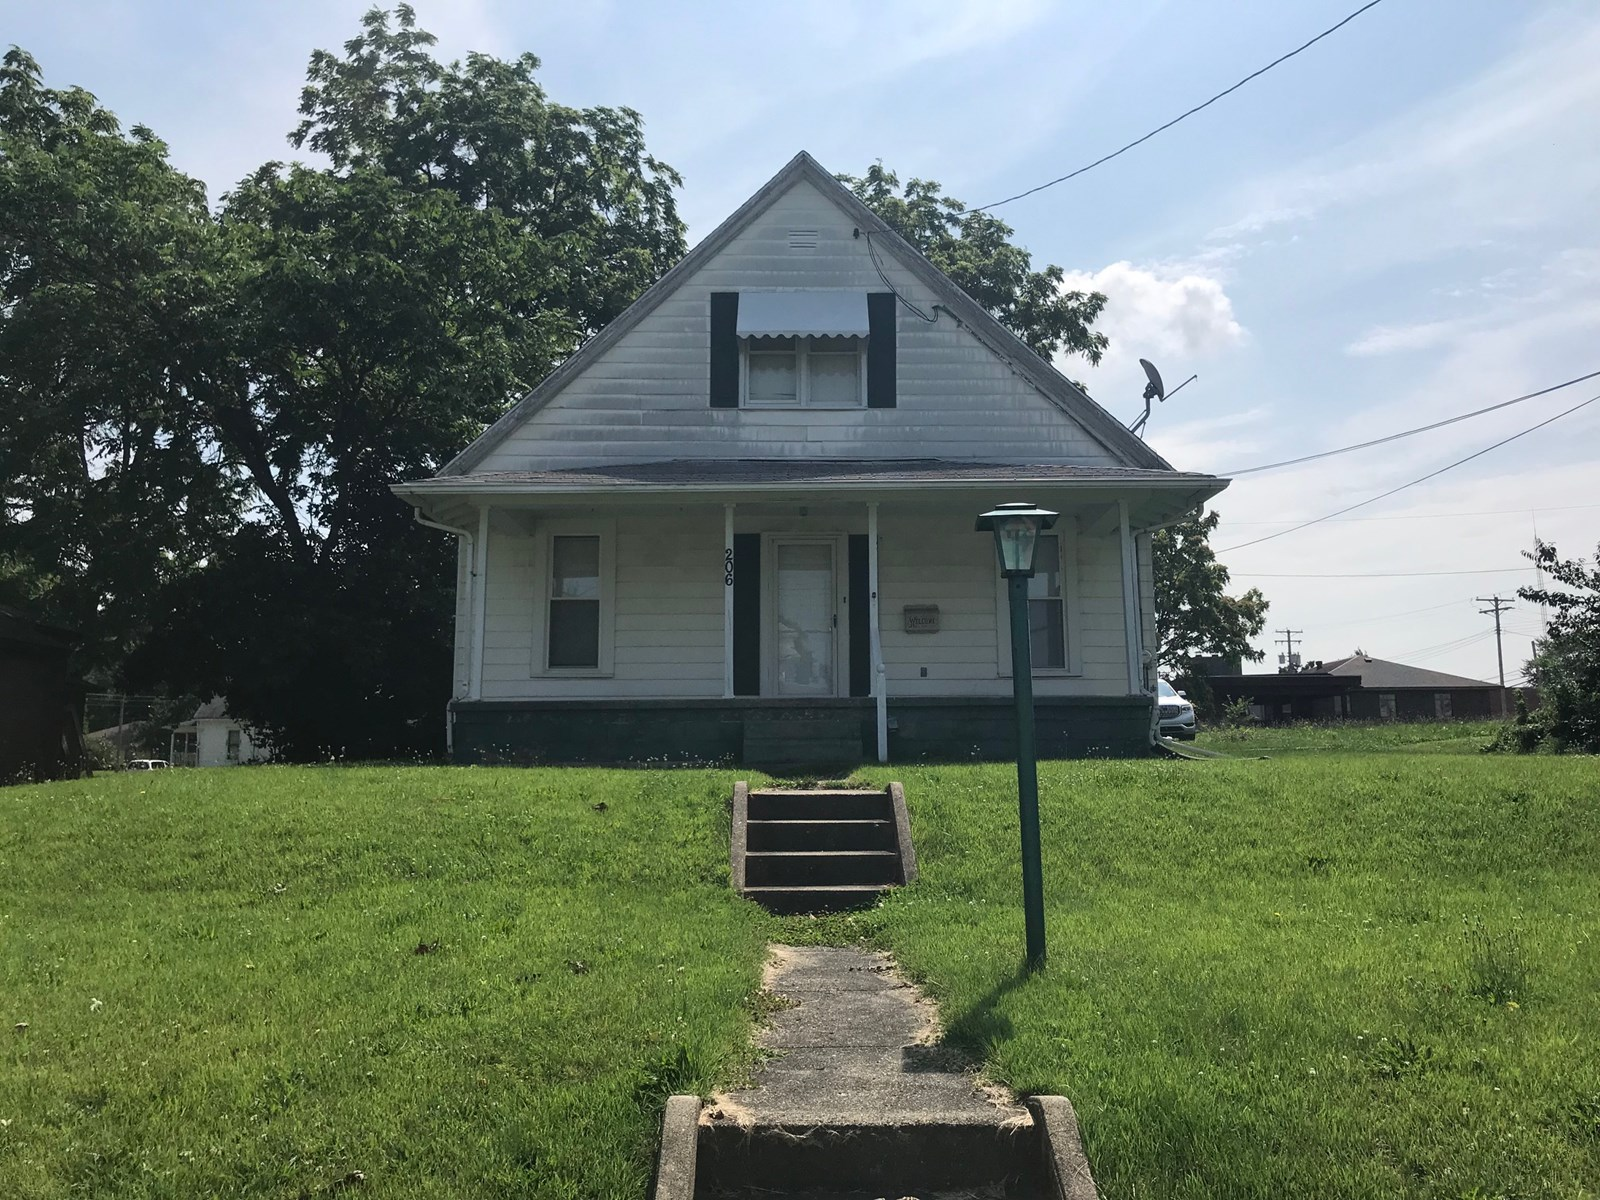 3 Bedroom, 2 Bath Home in Town